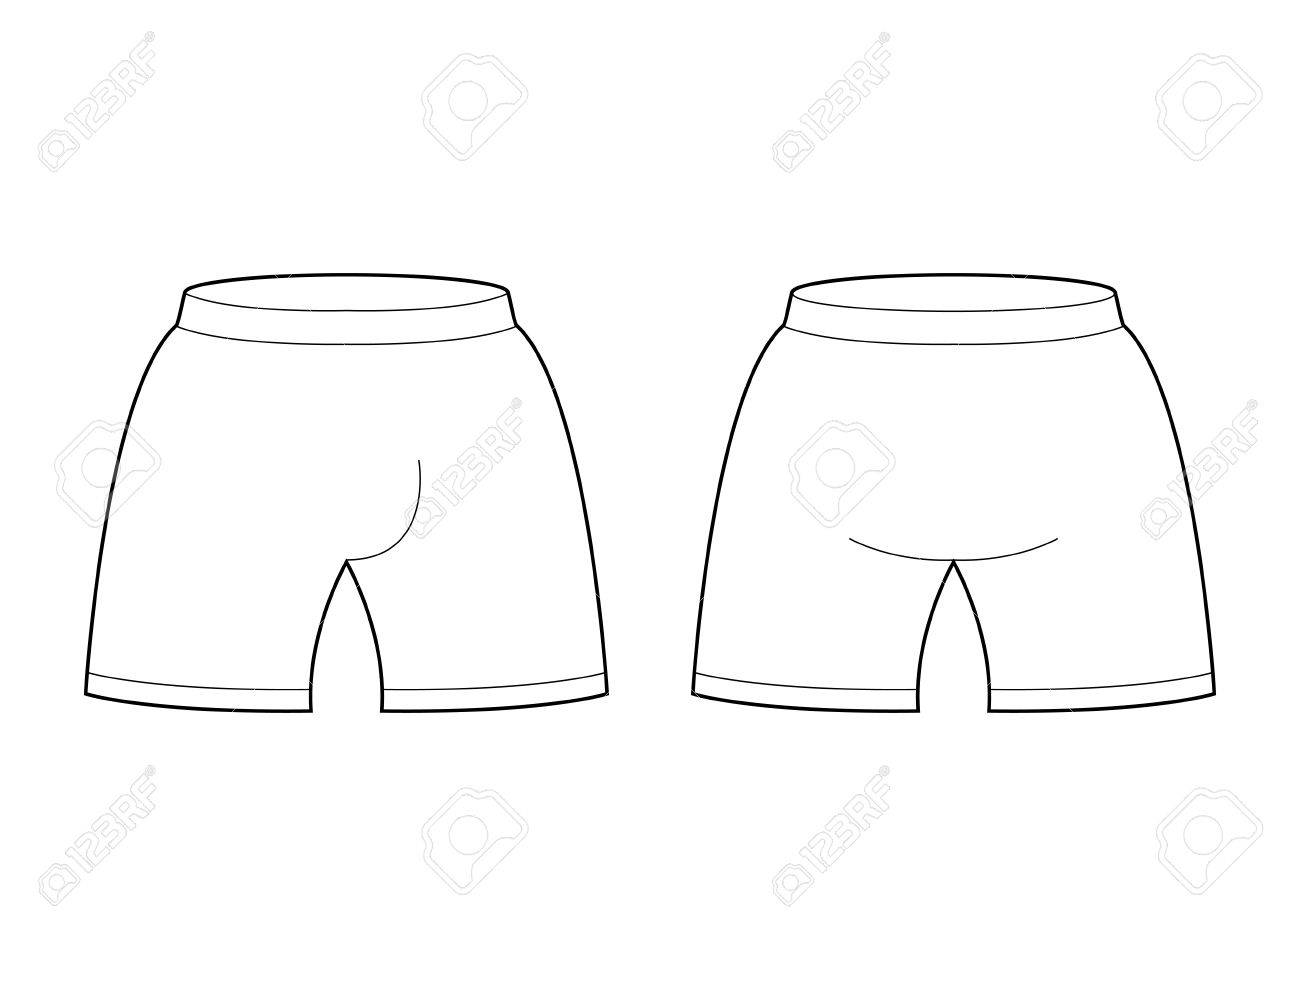 Shorts Template For Design Sample Sports Football Clothing Briefs Blank Curve Stock Vector